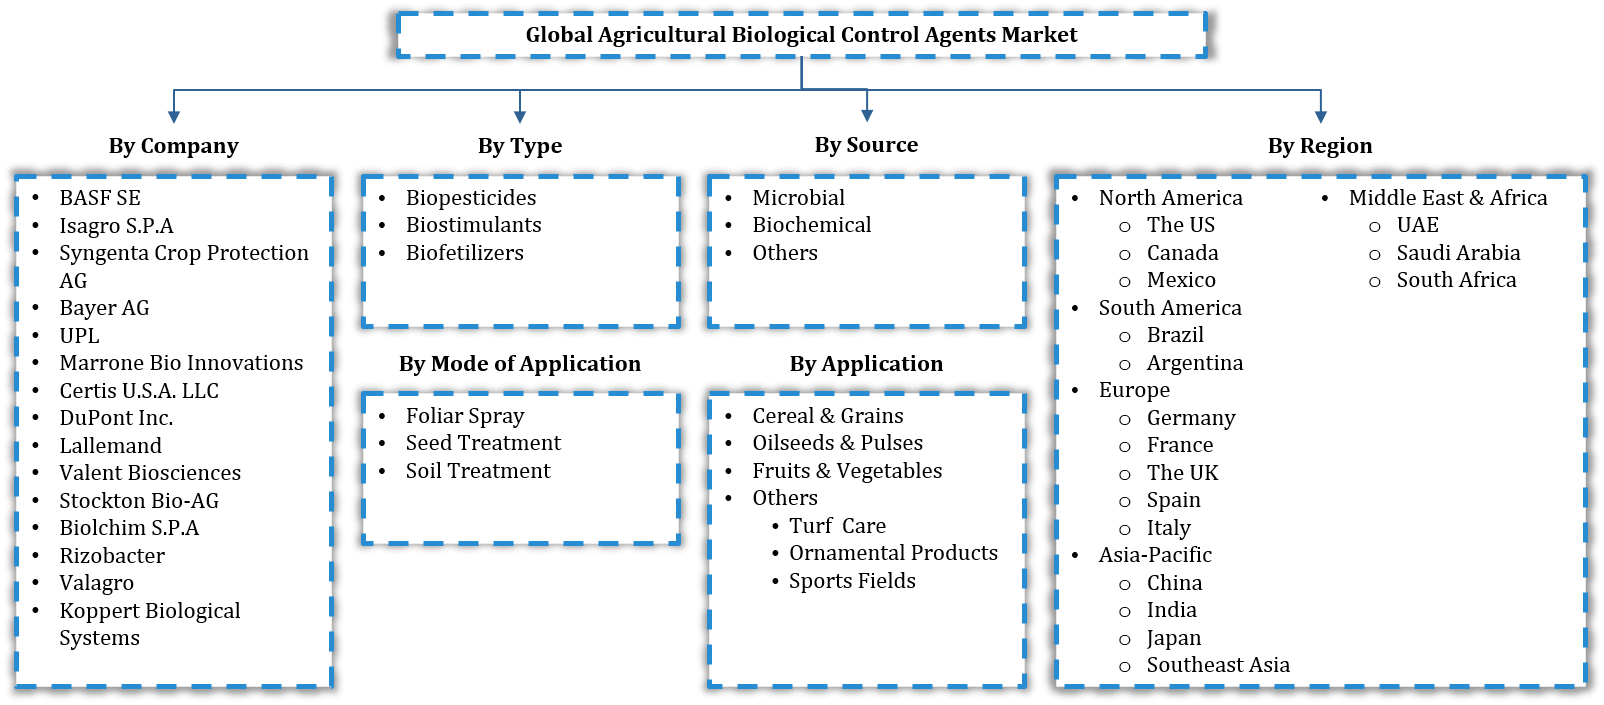 Global Agricultural Biological Control Agents Market Segmentation